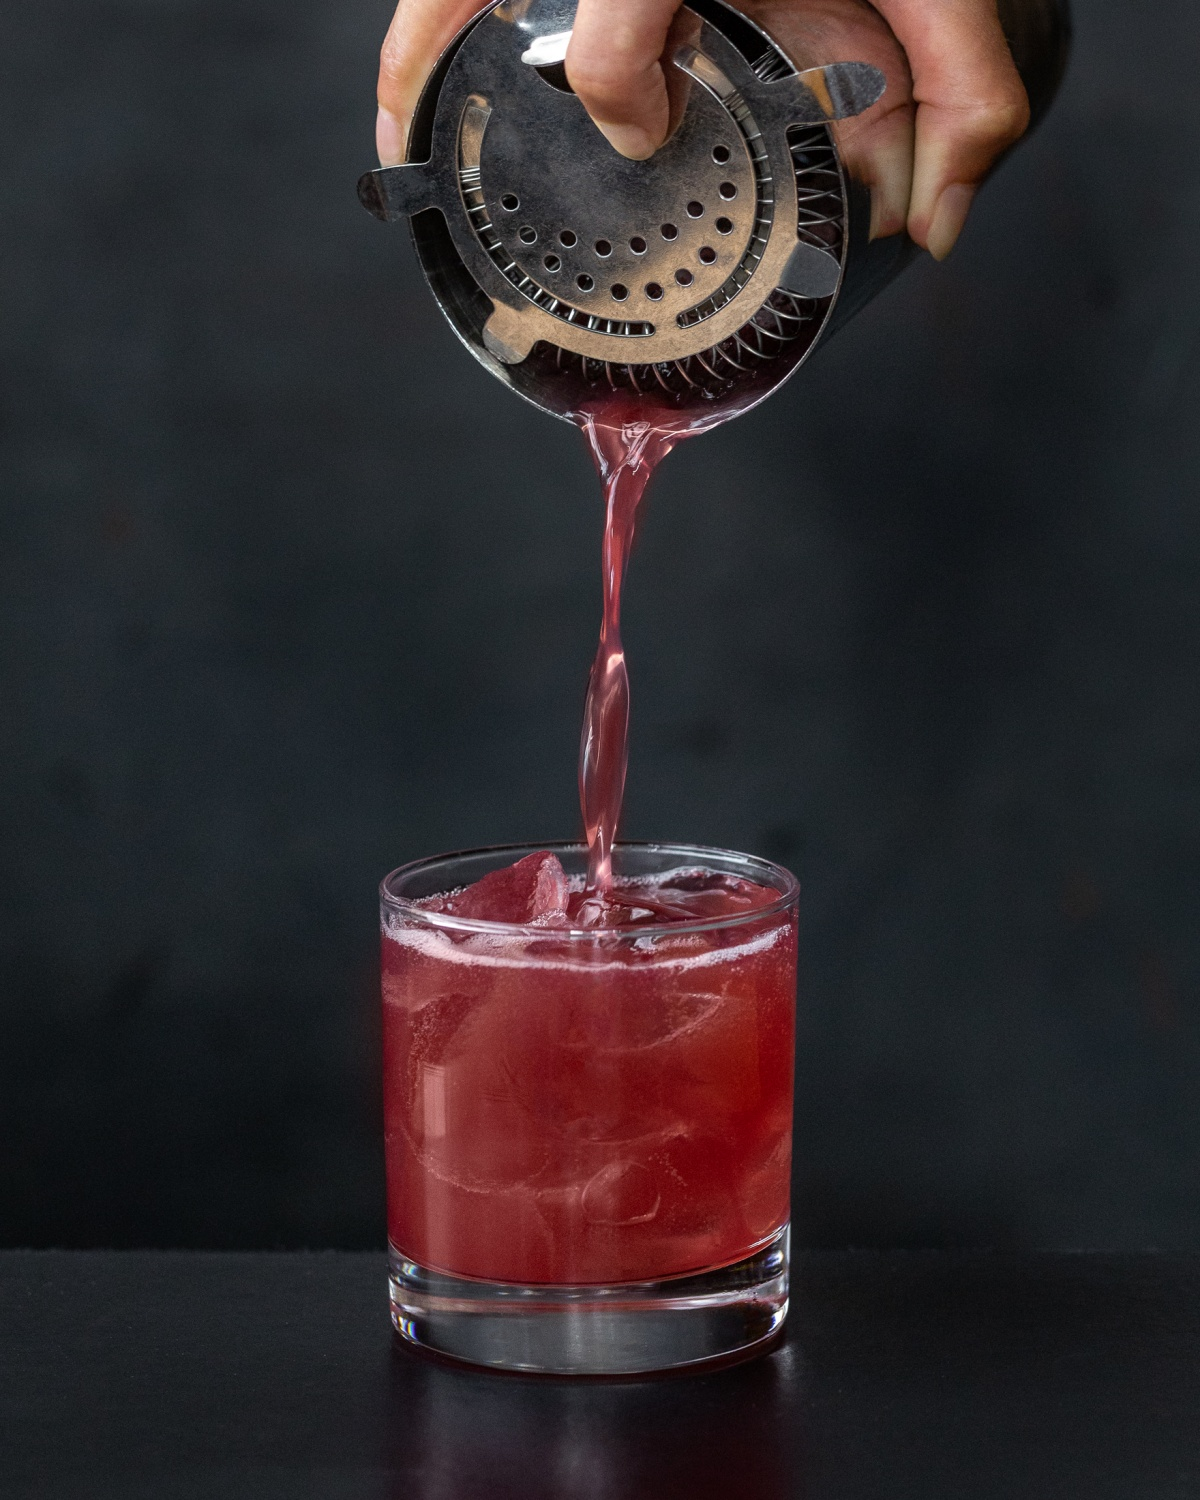 09-2019_OTOTO_Cocktail_Final Images_Web-Res_18